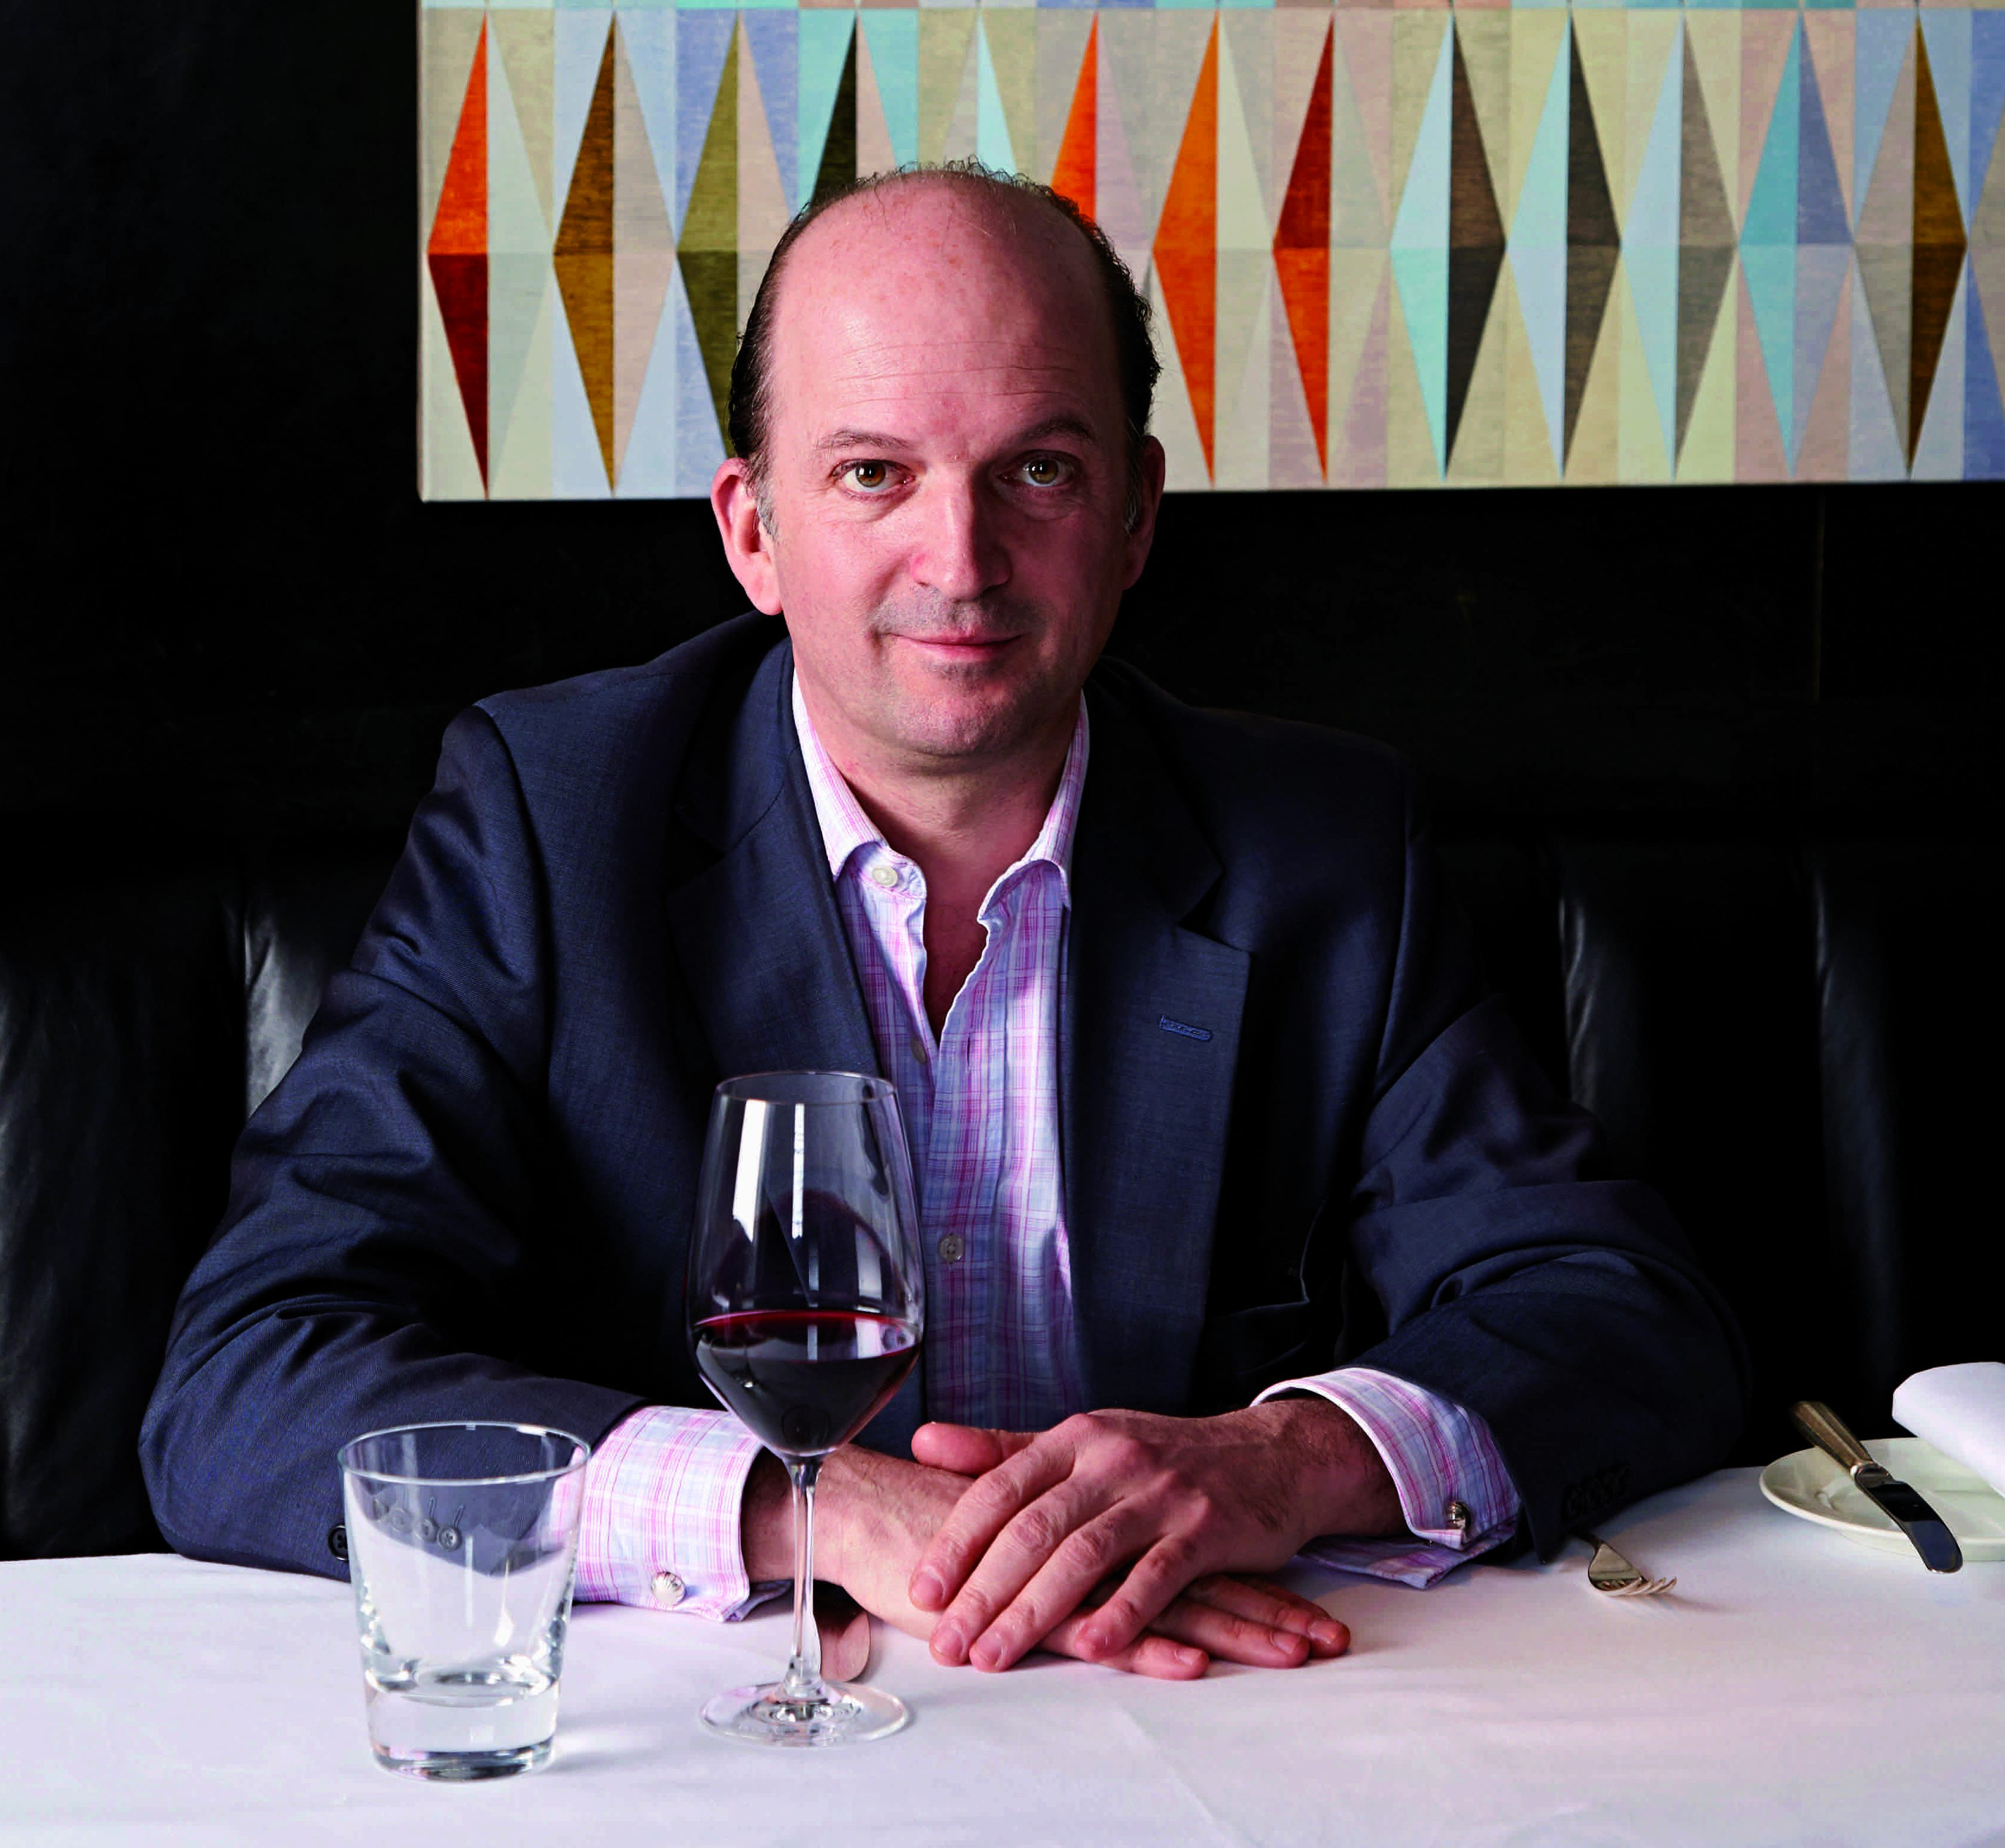 Top 100 Most Influential People in Wine 2019 - Drinks Retailing News